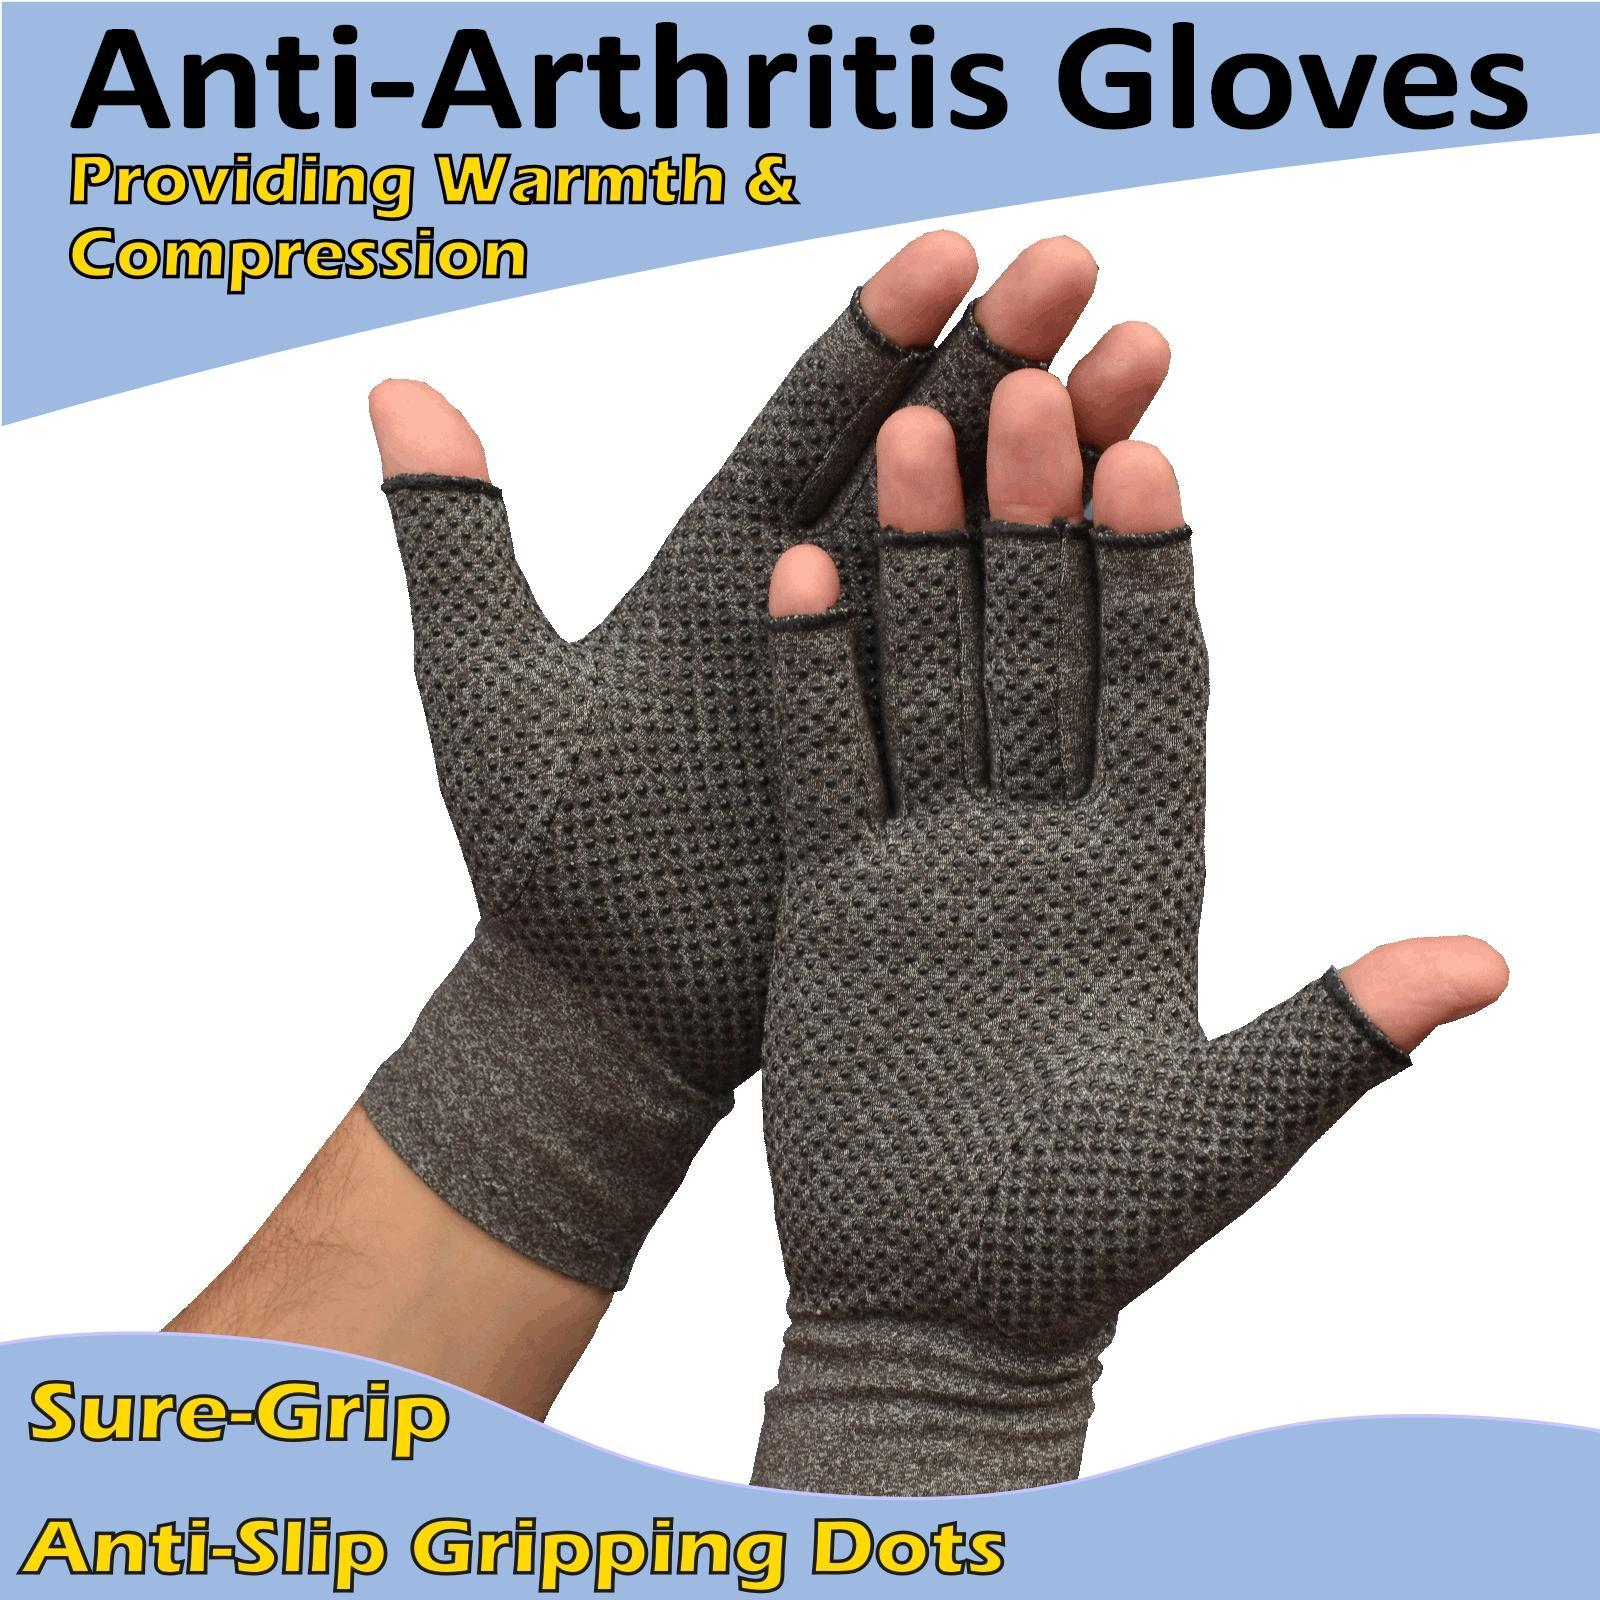 Details About Active Arthritis Gloves Grip Hand Compression Joint Arthritic Pain Relief